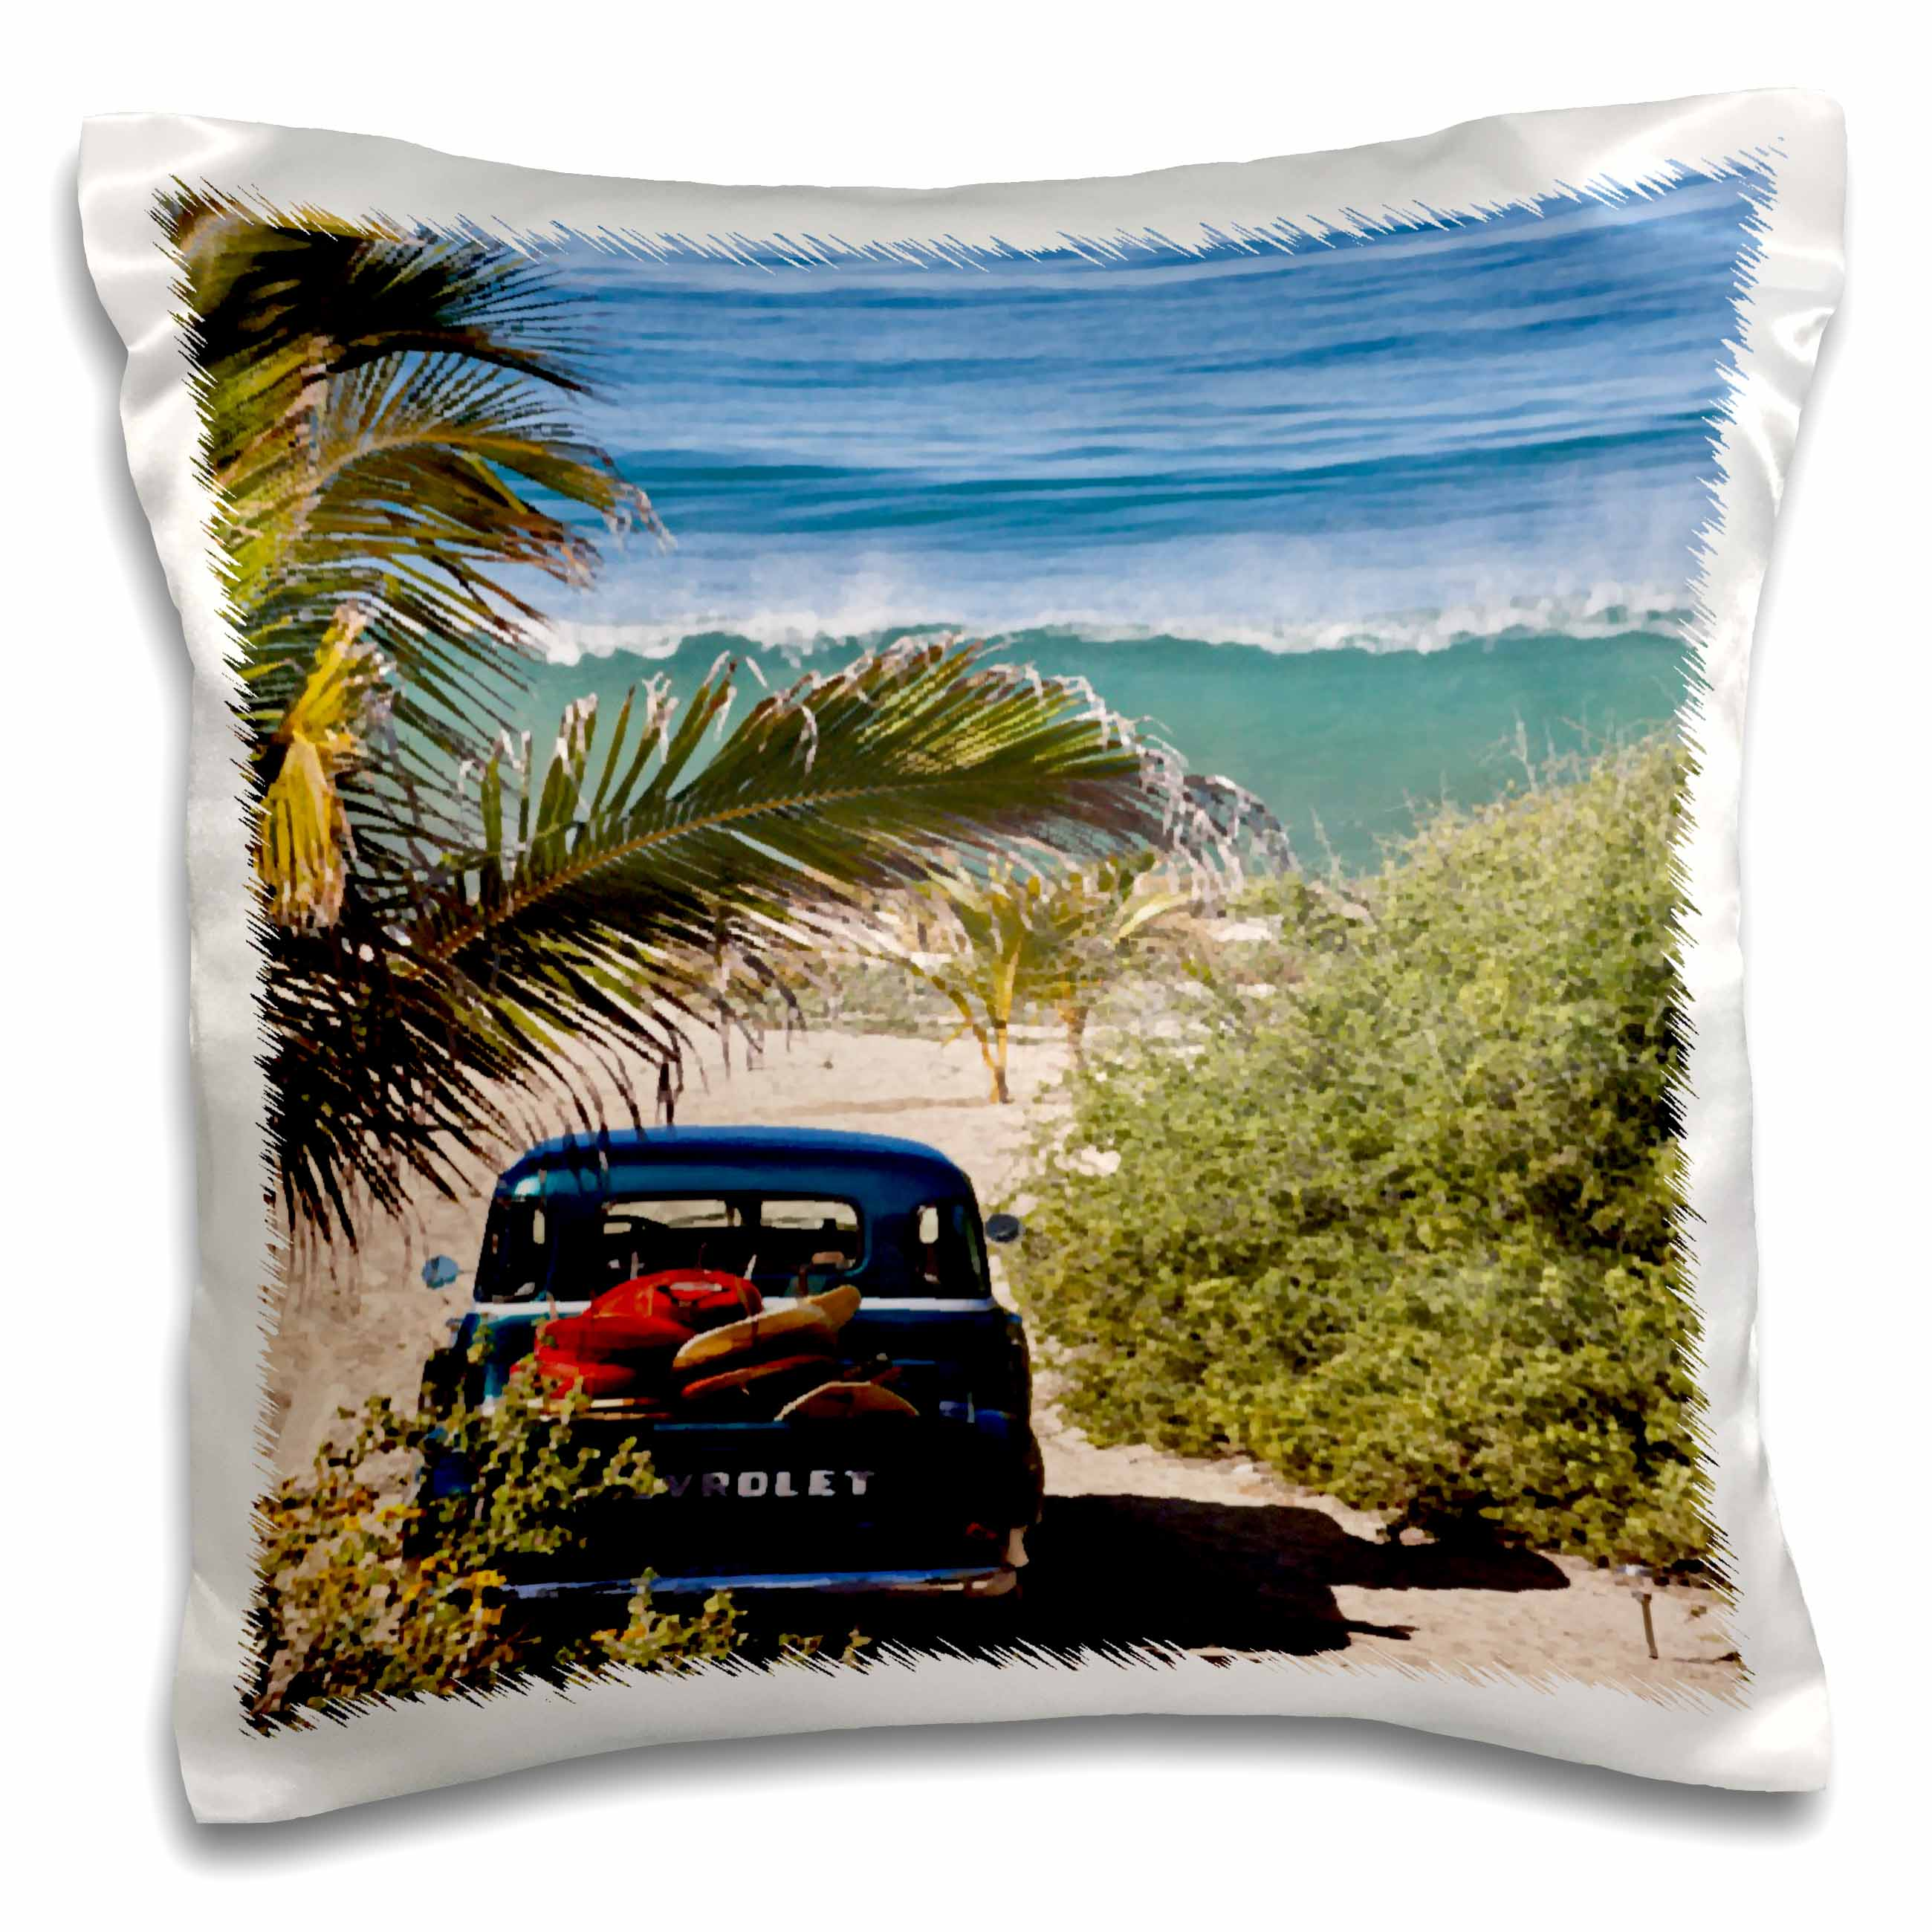 3dRose Classic Woody with surfboards on a tropical island beach - Pillow Case, 16 by 16-inch